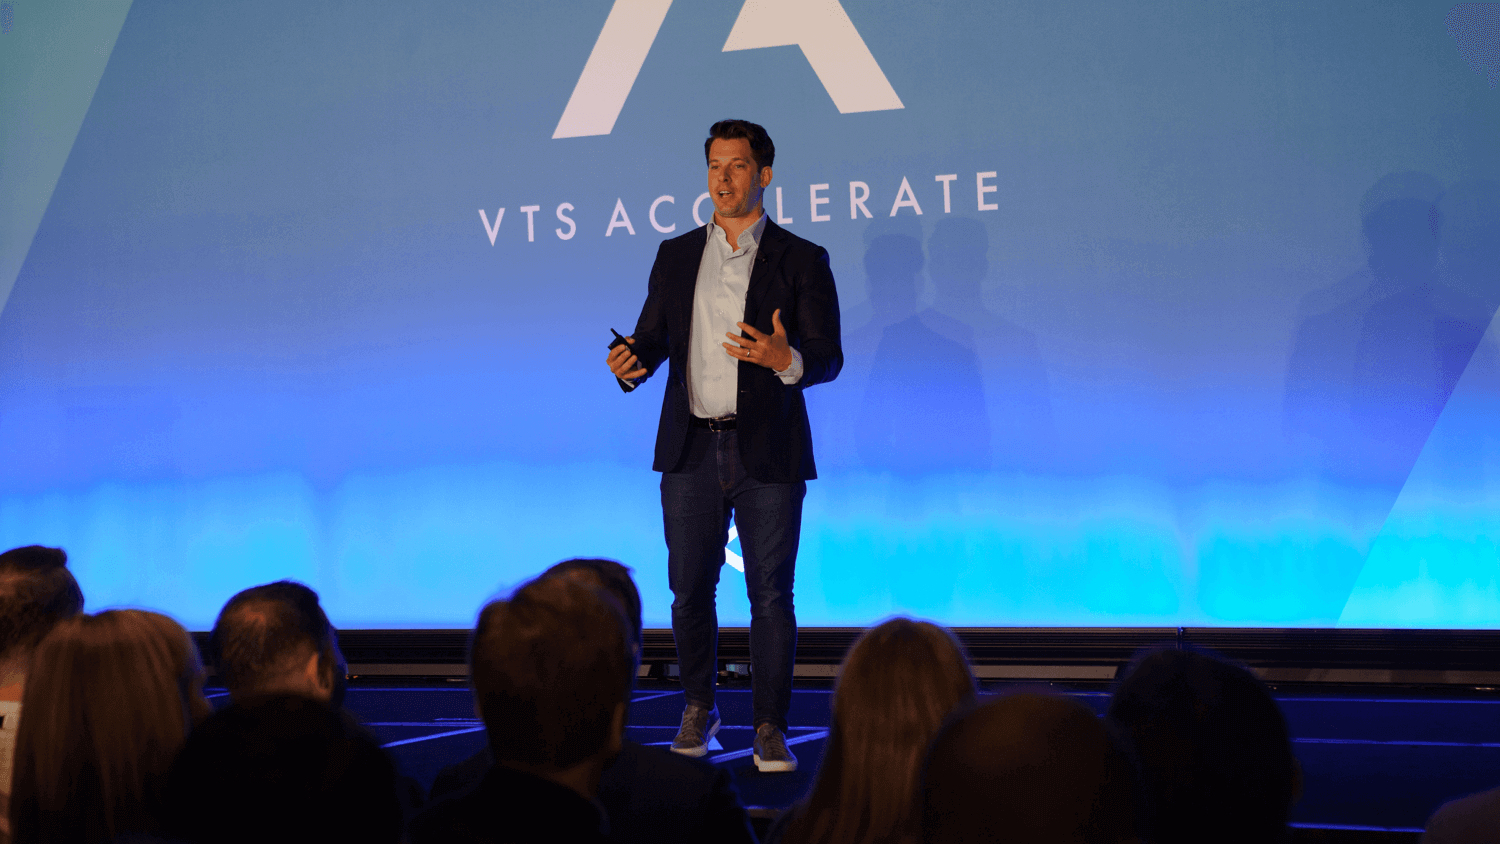 VTS Accelerate is Back May 6-7, 2019 NYC!